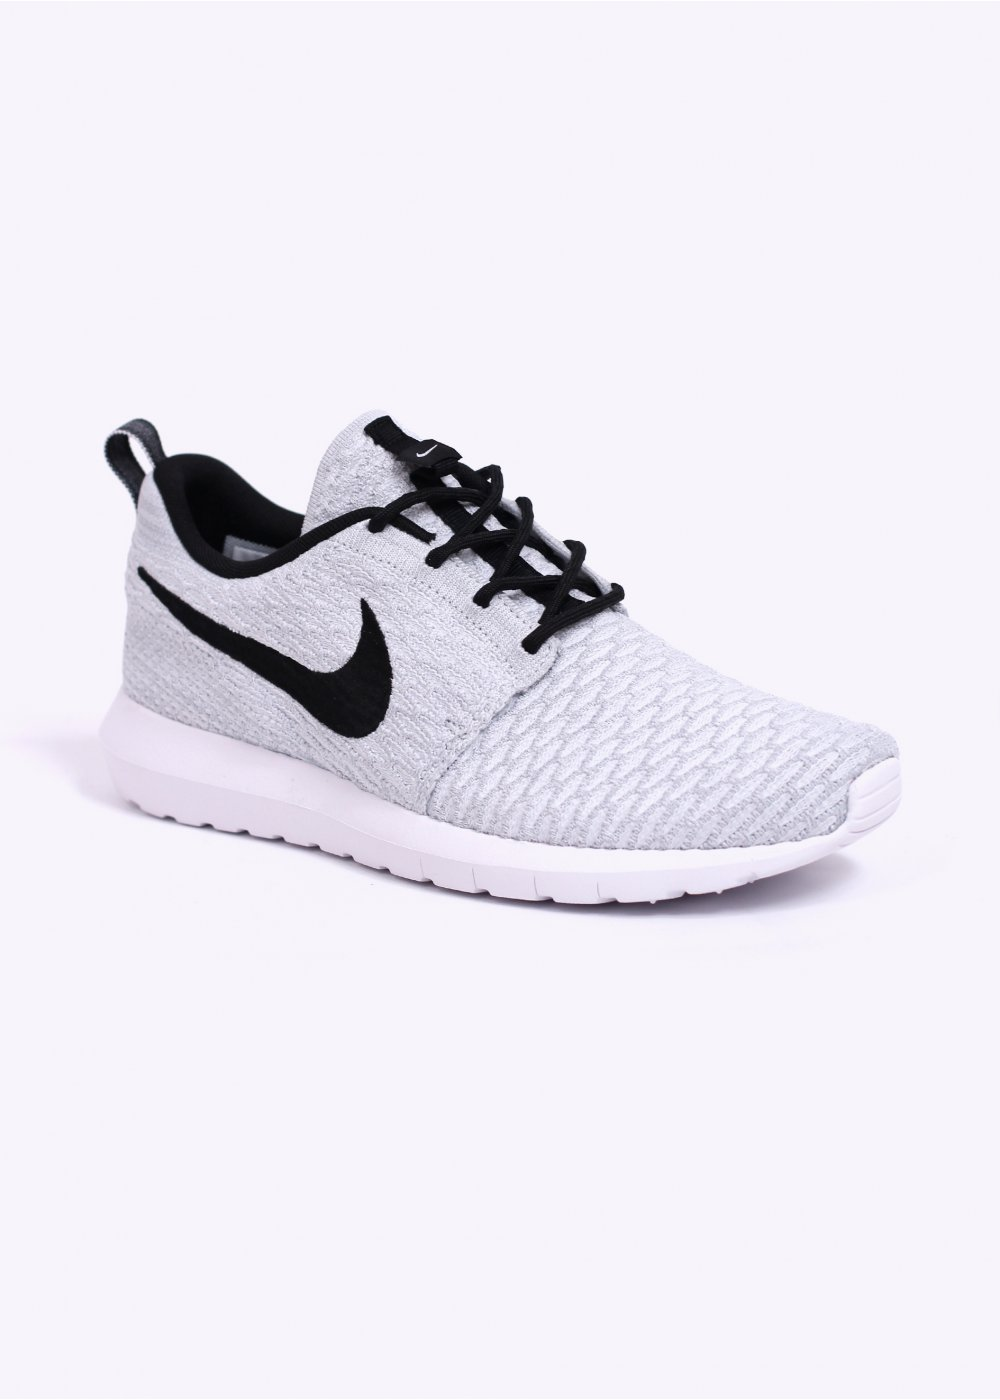 nike flyknit roshe run trainers white black wolf grey. Black Bedroom Furniture Sets. Home Design Ideas